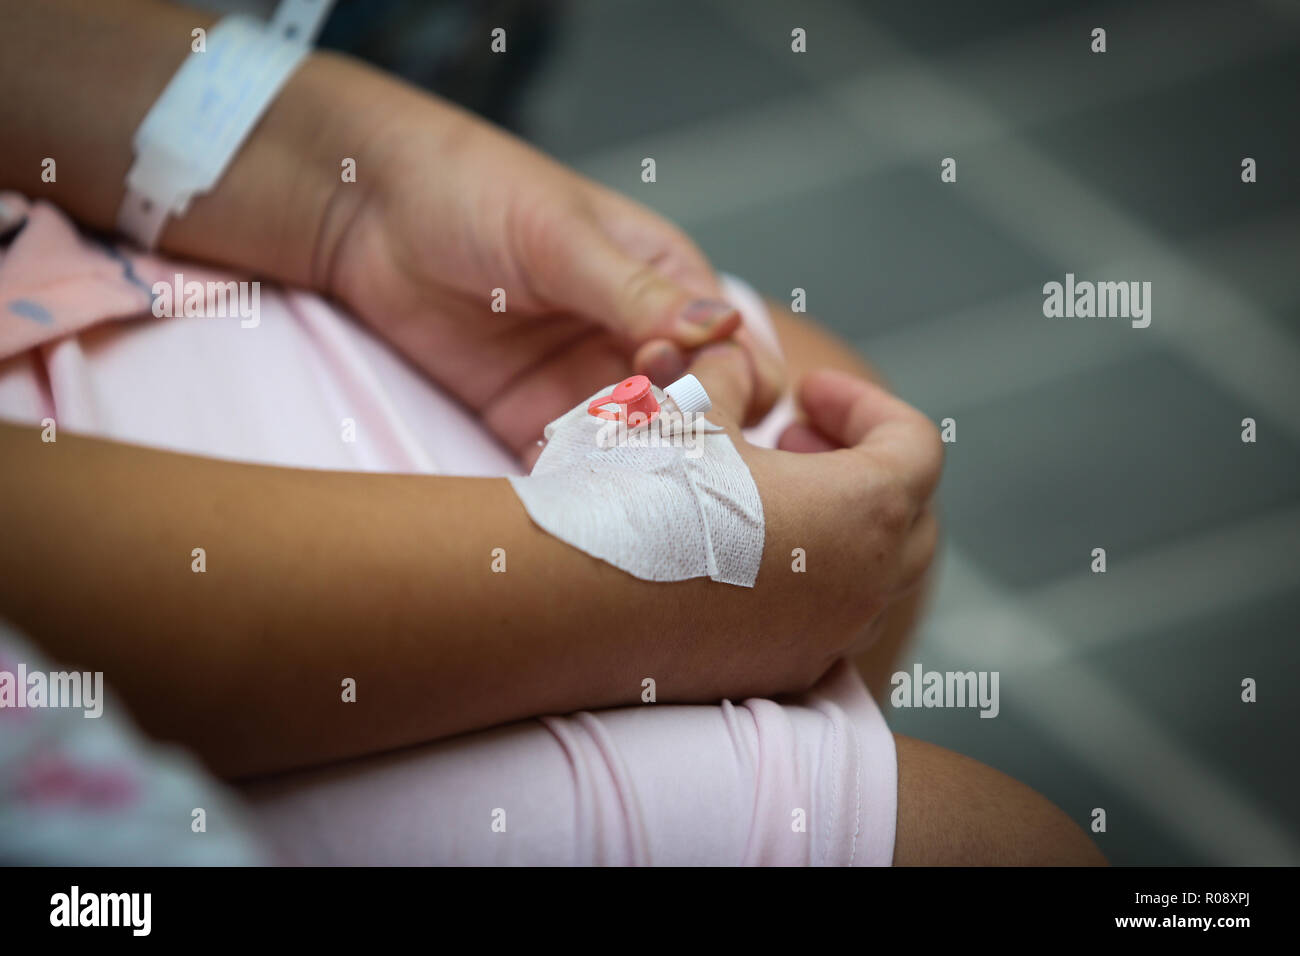 Details of a cannula on the hand of a pregnant woman in the hospital - Stock Image